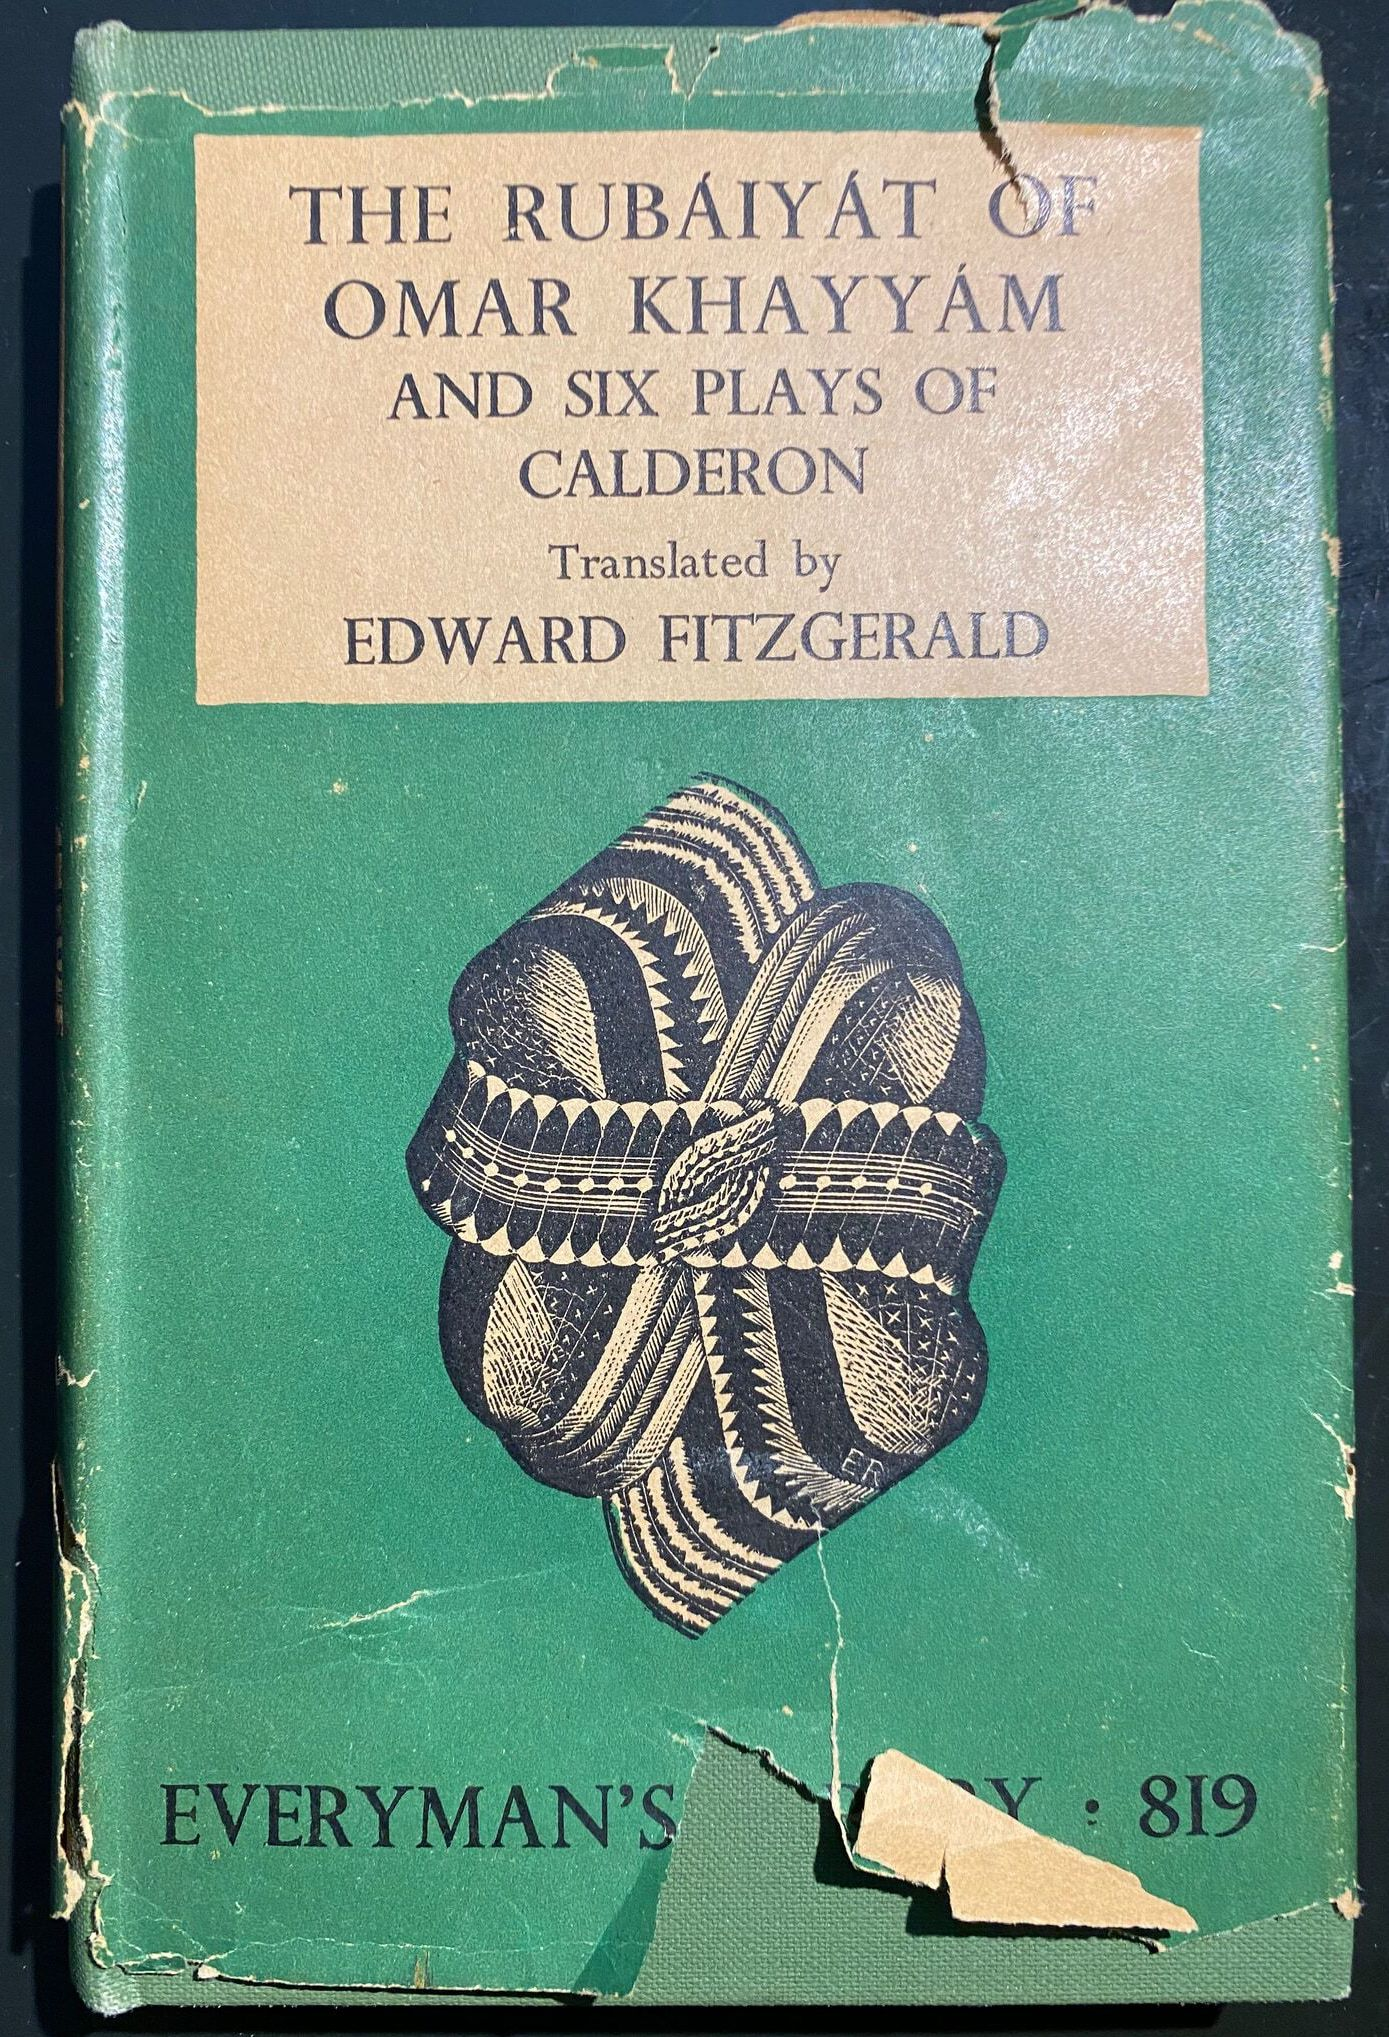 1948 Everyman's Library Edition with Six Plays of Calderon